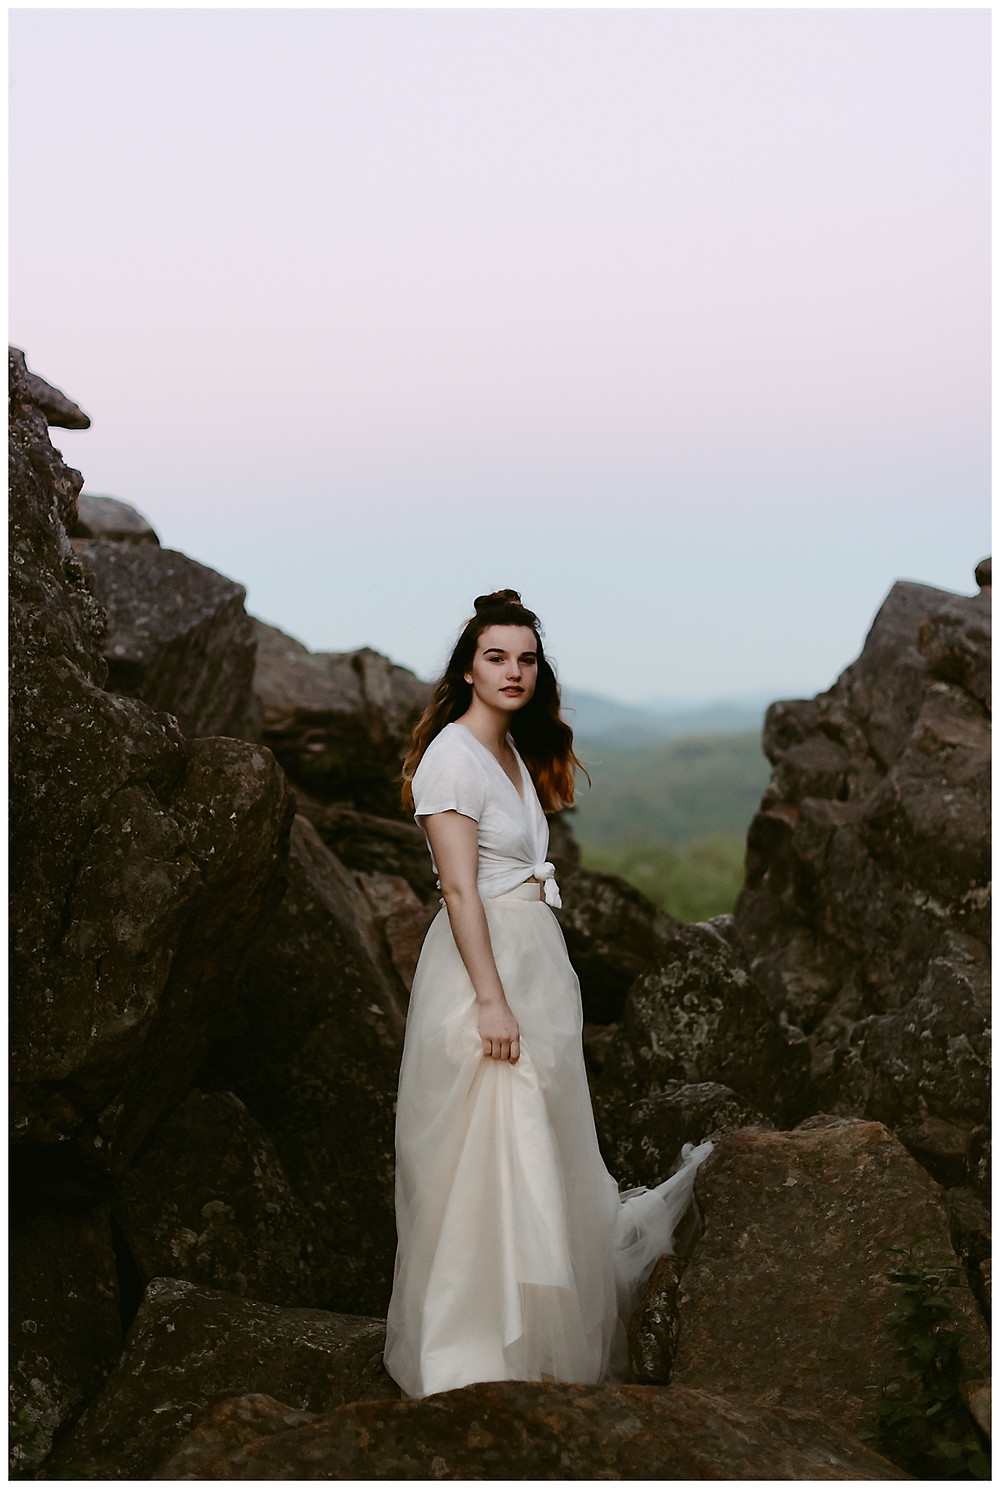 Sunrise Portrait Session on Chimney Mountain by Mountainaire Gatherings